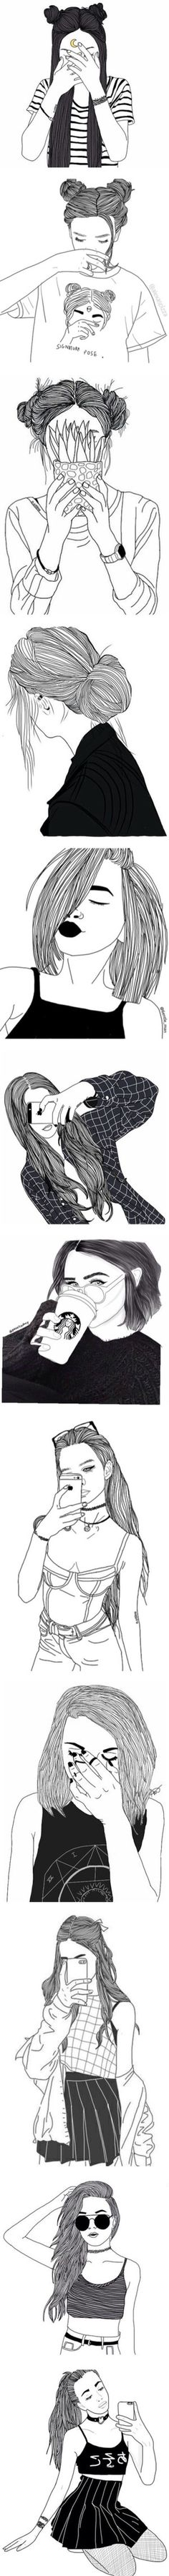 black line drawings by xxharrietxx on Polyvore featuring black, drawings, fillers, doodles, art, outlines, drawing, text, quotes and magazine